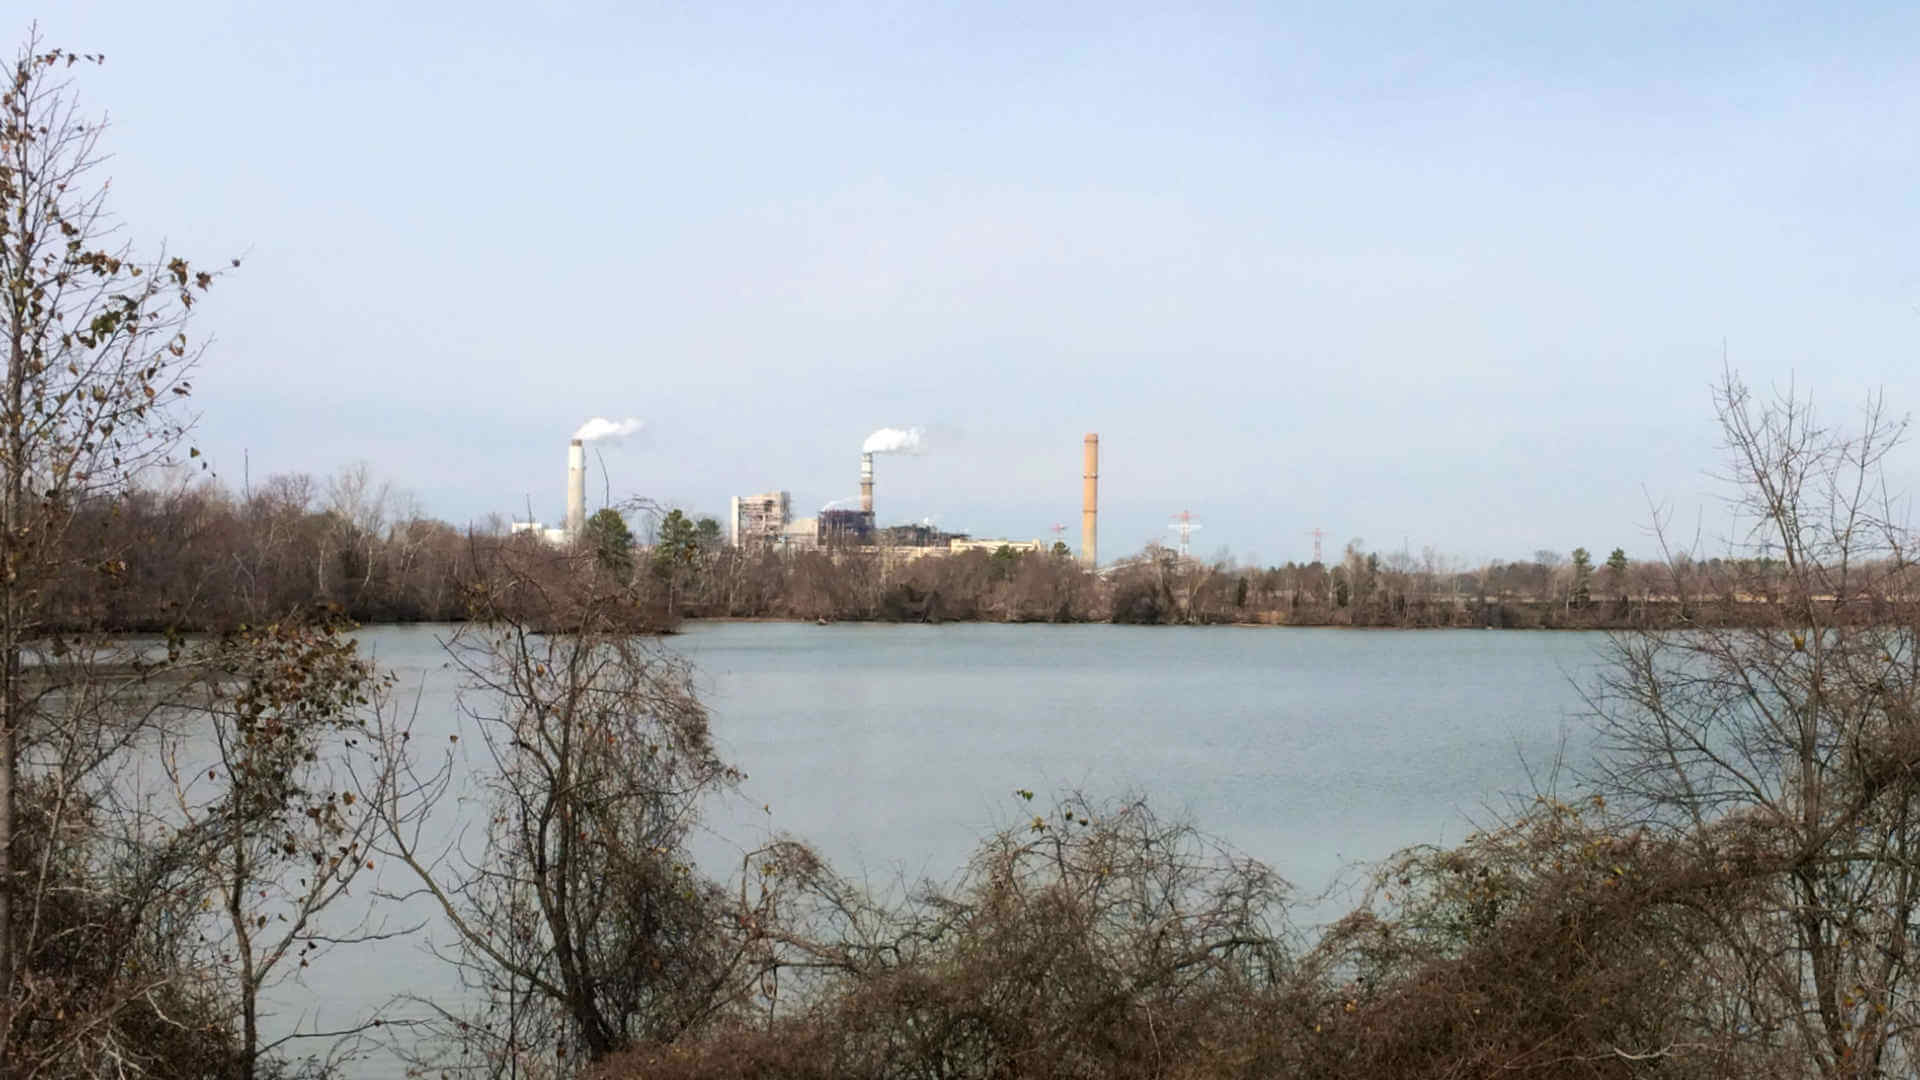 A nearby coal power plant supplying much of our metro region though it's in a rural area surrounded by parks.